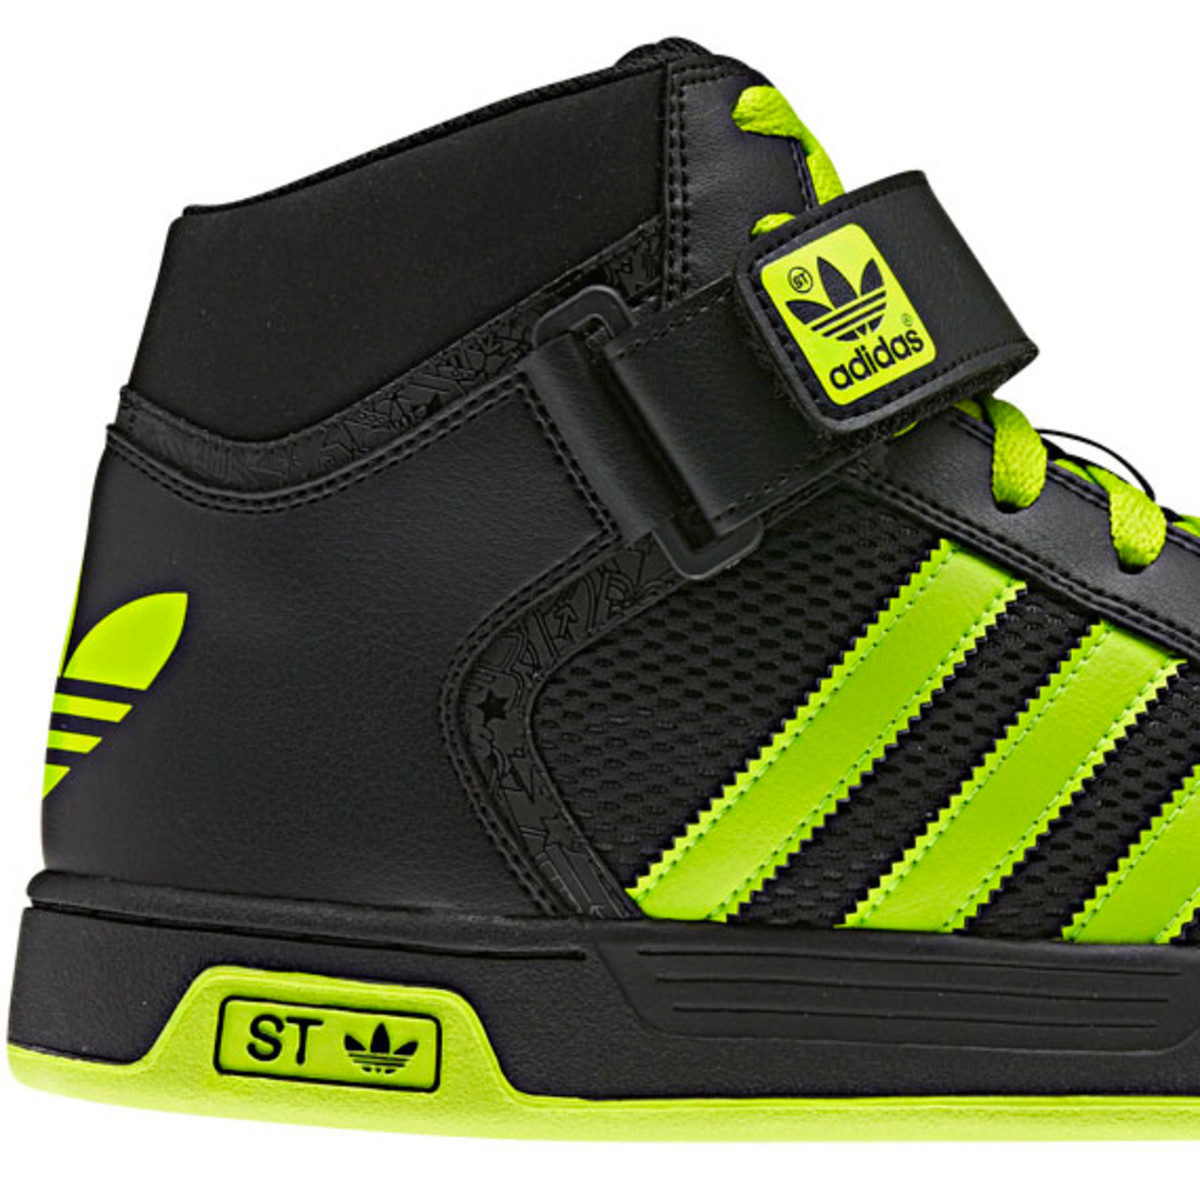 adidas-originals-st-collection-sneakers-04